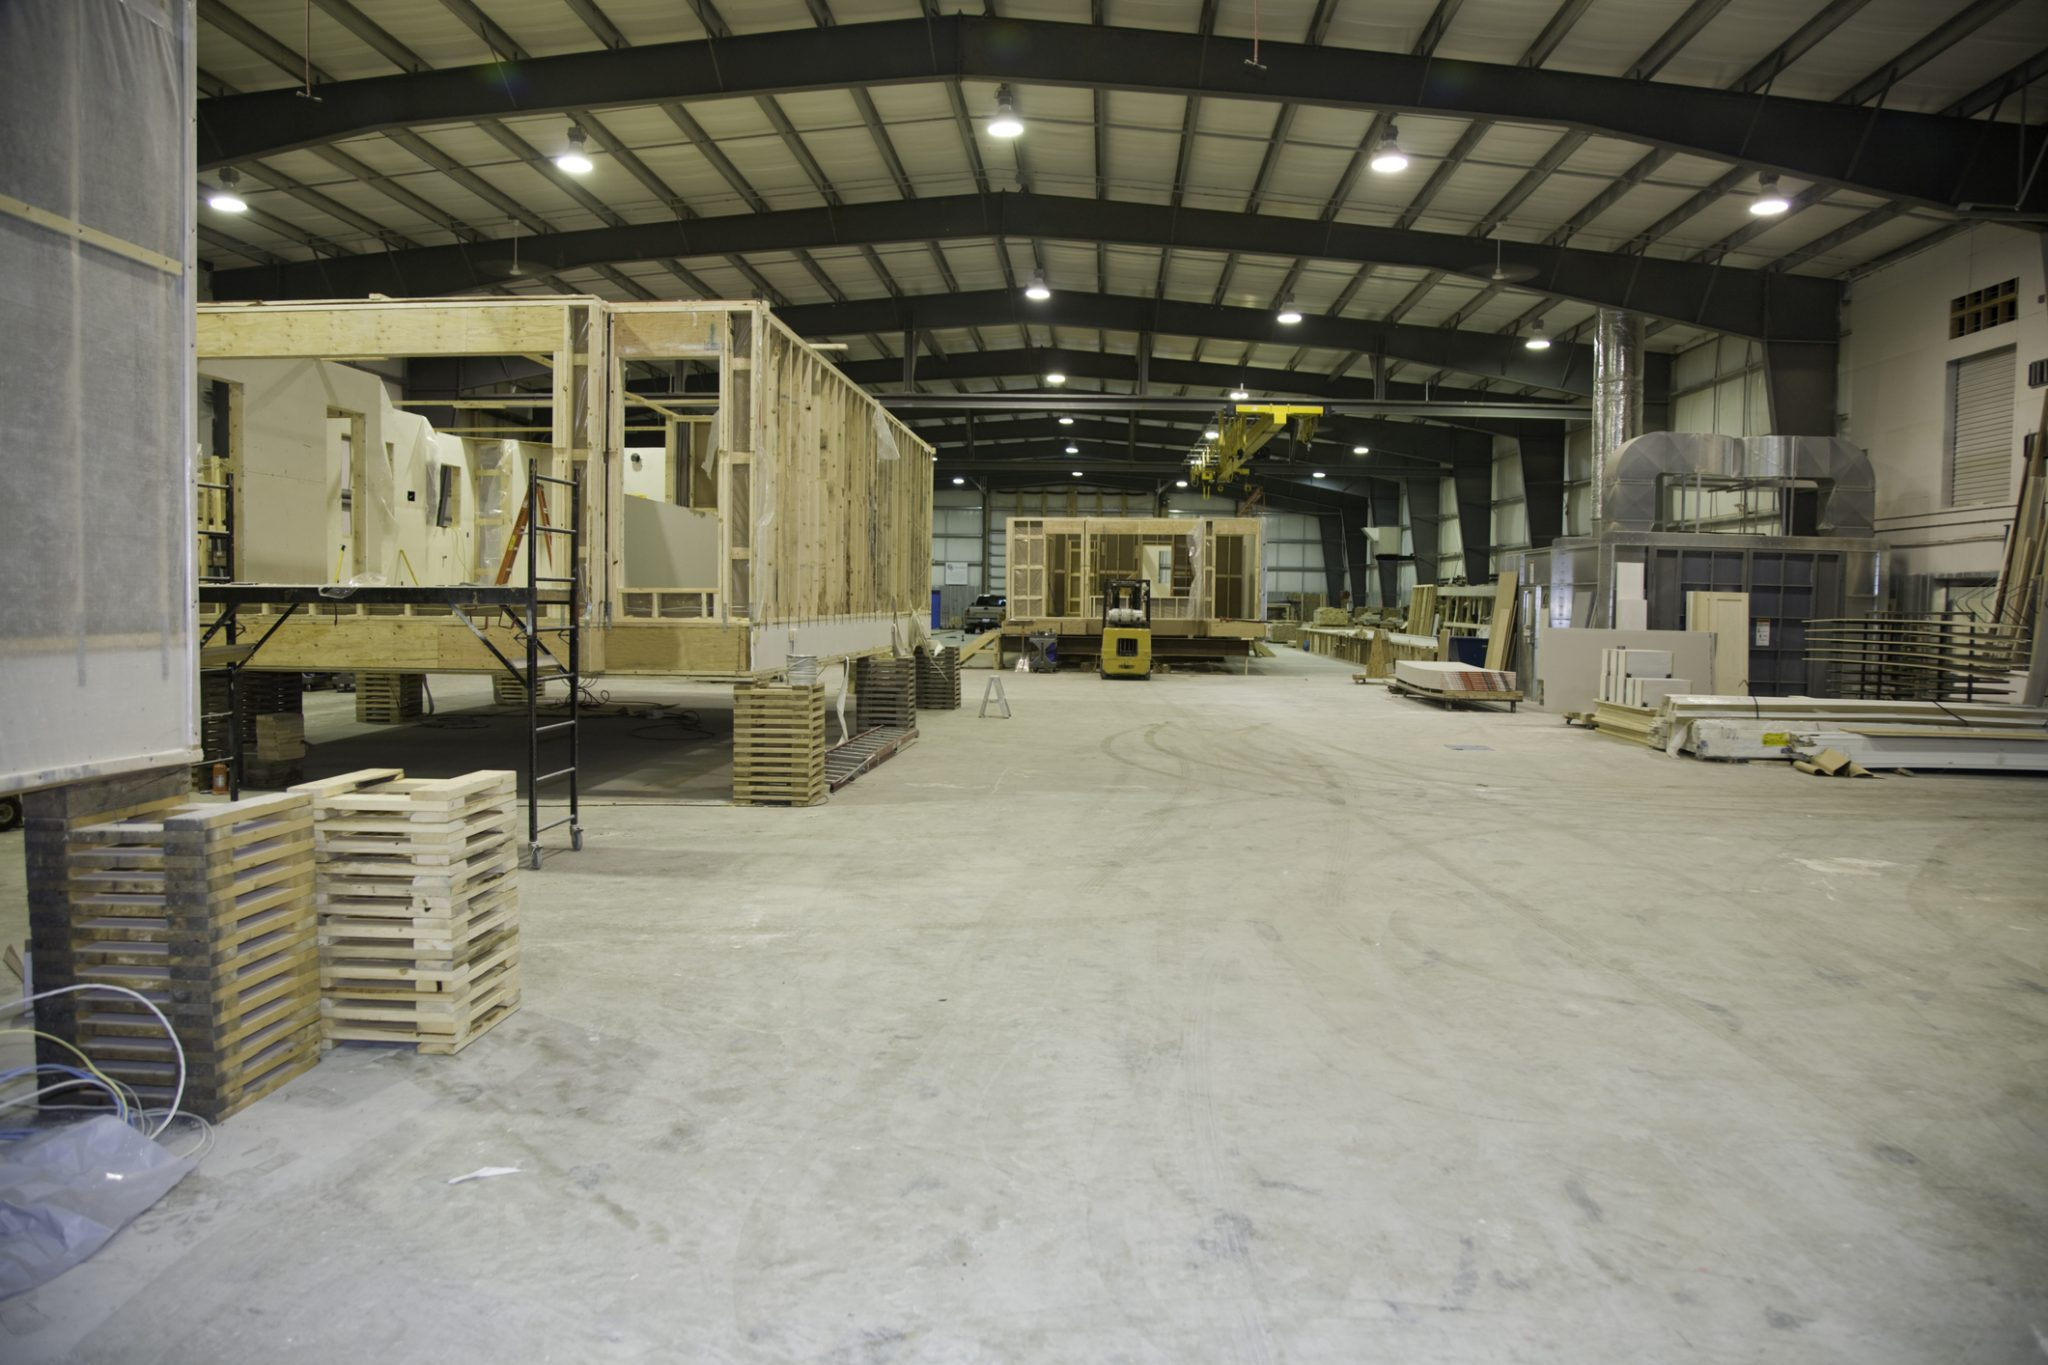 Benefits Of Modular Construction: 4 Great Innovative Building Approaches